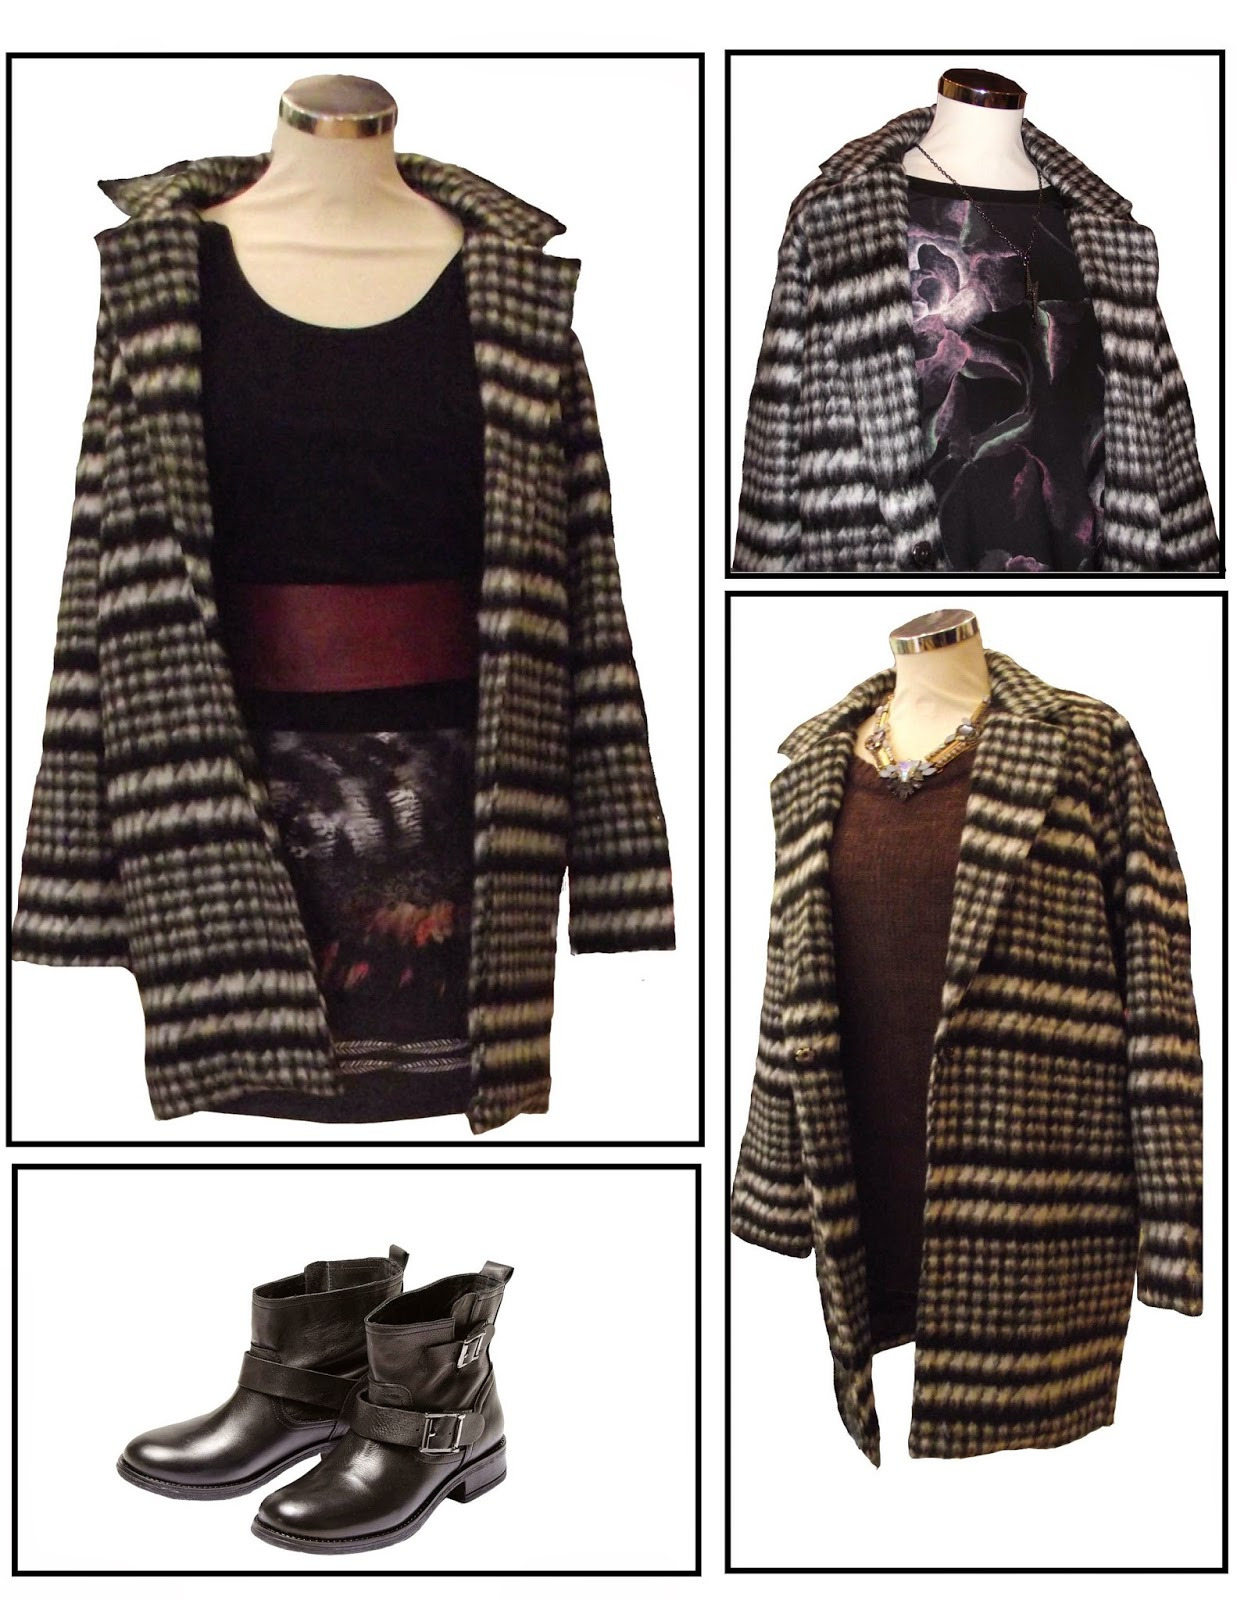 Style 2 - looks for B young monochrome coat